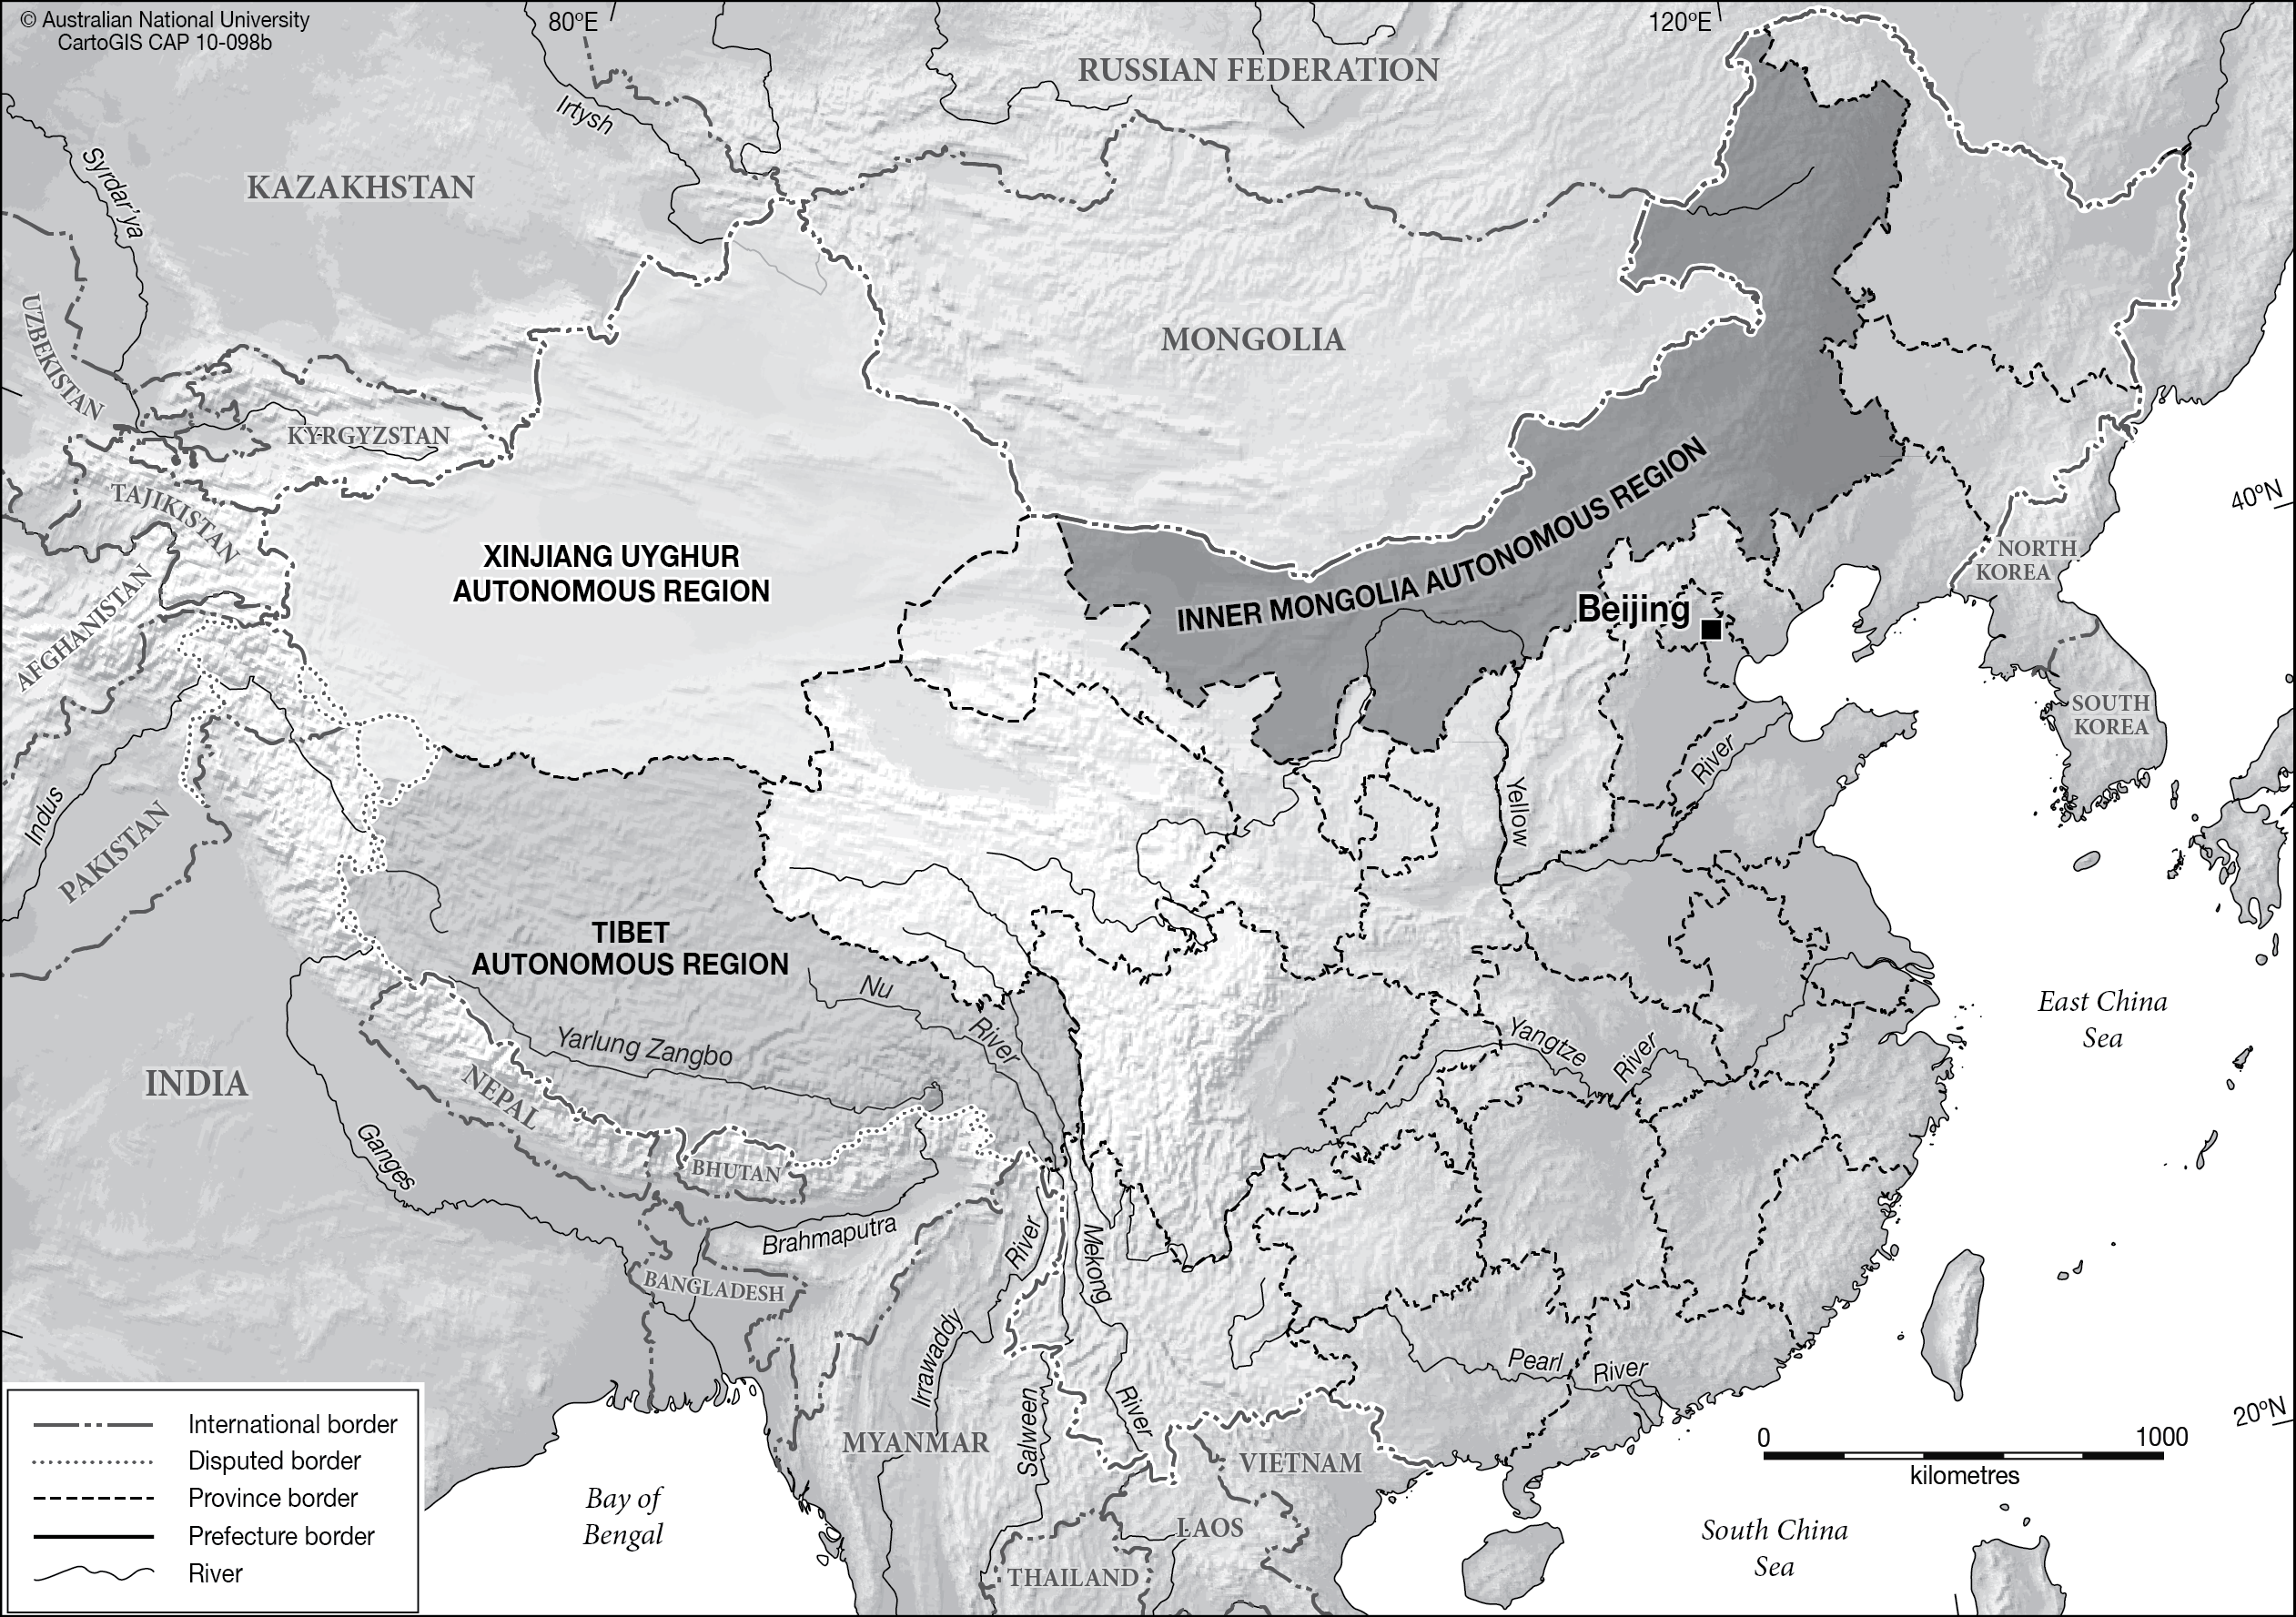 China - autonomous regions - CartoGIS Services Maps Online - ANU on rise of china, religion of china, leader of china, special economic zones of china, terracotta warriors of china, sixy of china, landforms of china, great firewall of china, women of china, dictator of china, relief map of china, population density of china, japanese occupation of china, fashion of china, natural resources of china, is tibet part of china, empress wu of china, political parties of china, shape of china,